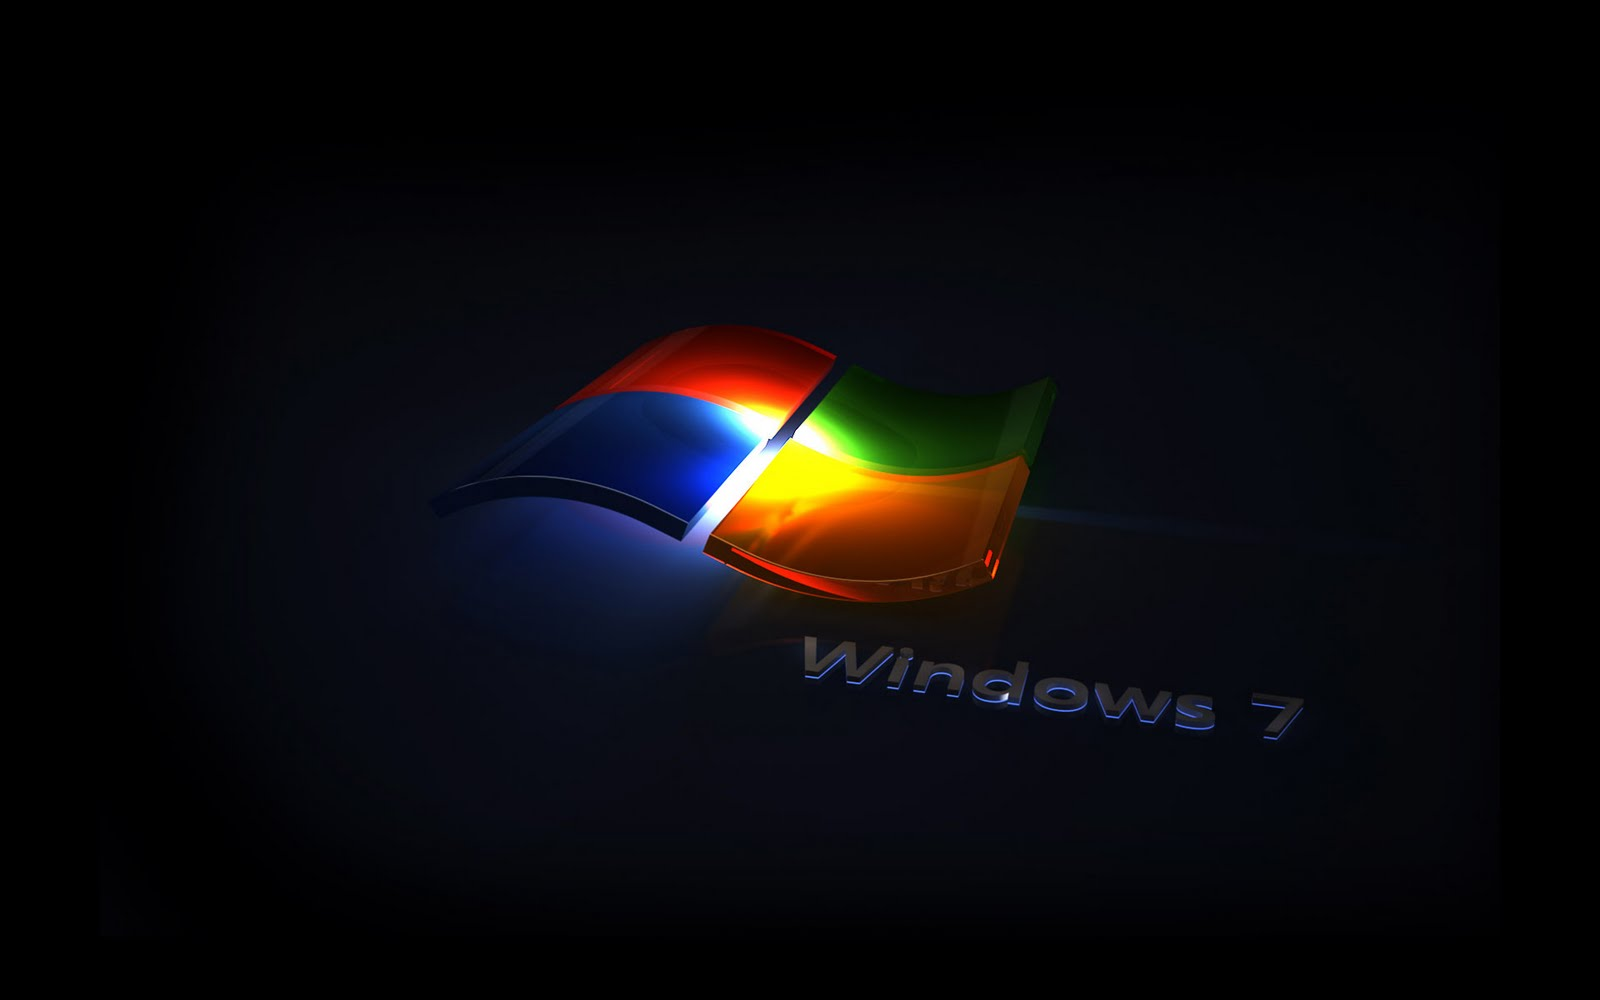 windows seven 7 original wide hd wallpapers - Windows Seven 7 Original Wide Desktop Wallpaper Hdwpics